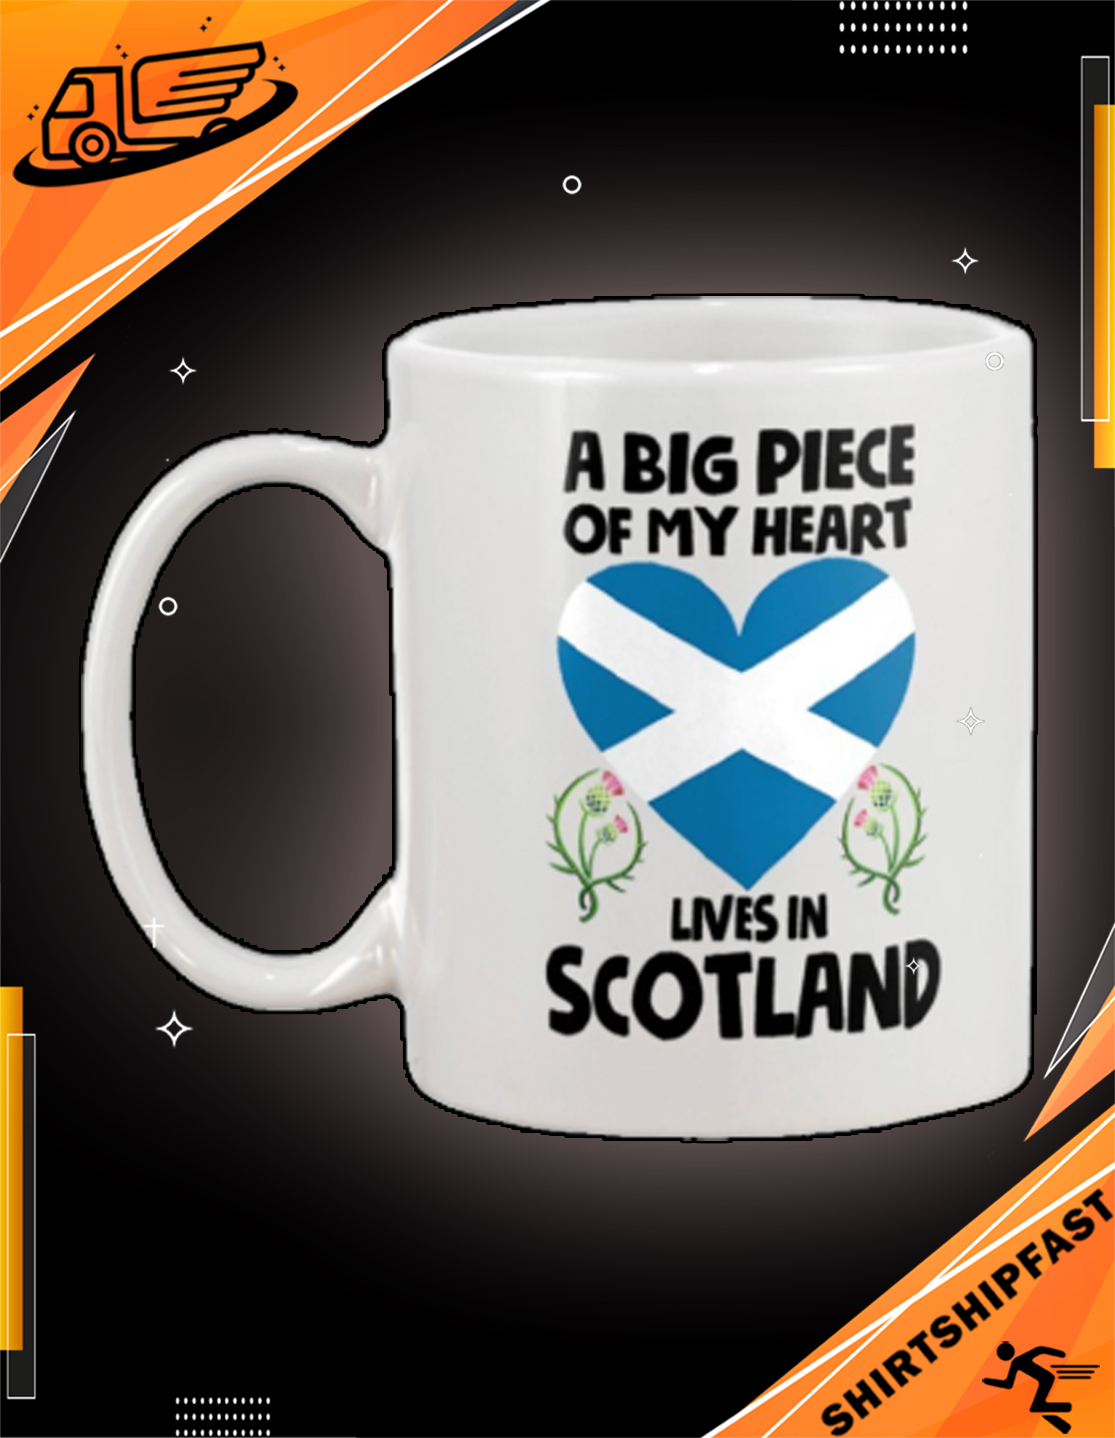 A big piece of my heart lives in Scotland mug - Picture 3